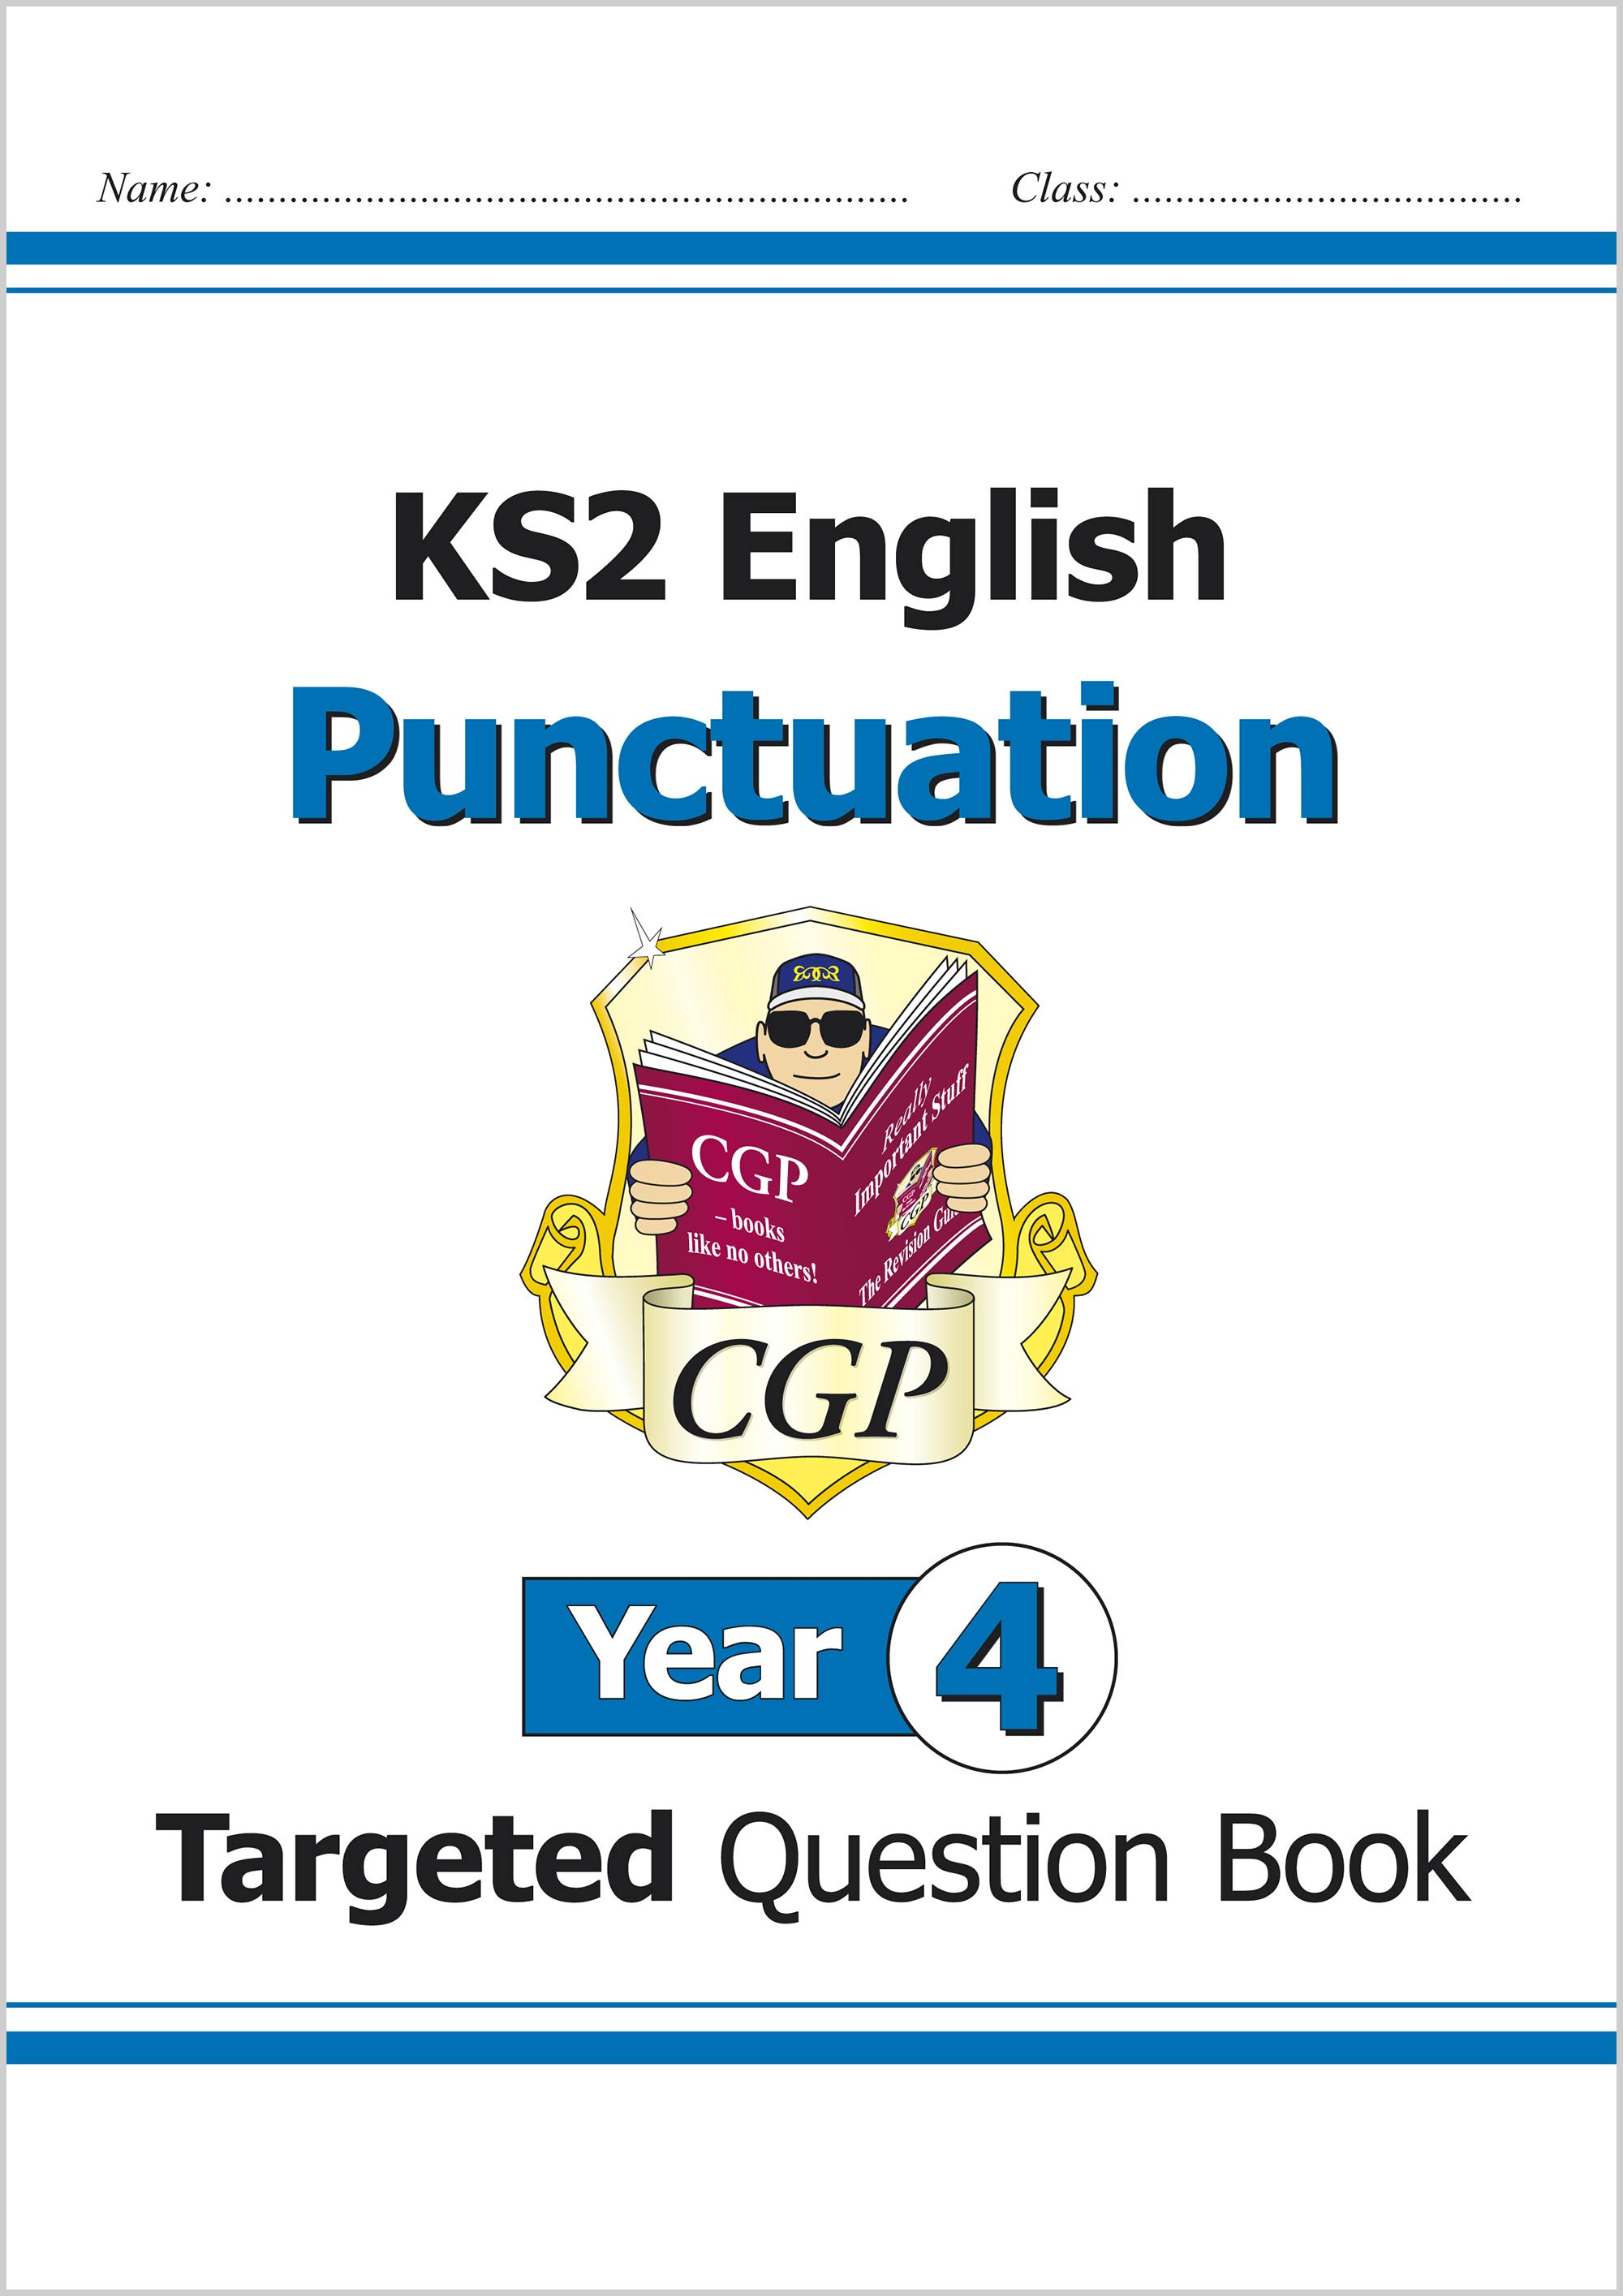 E4PW21 - KS2 English Targeted Question Book: Punctuation - Year 4